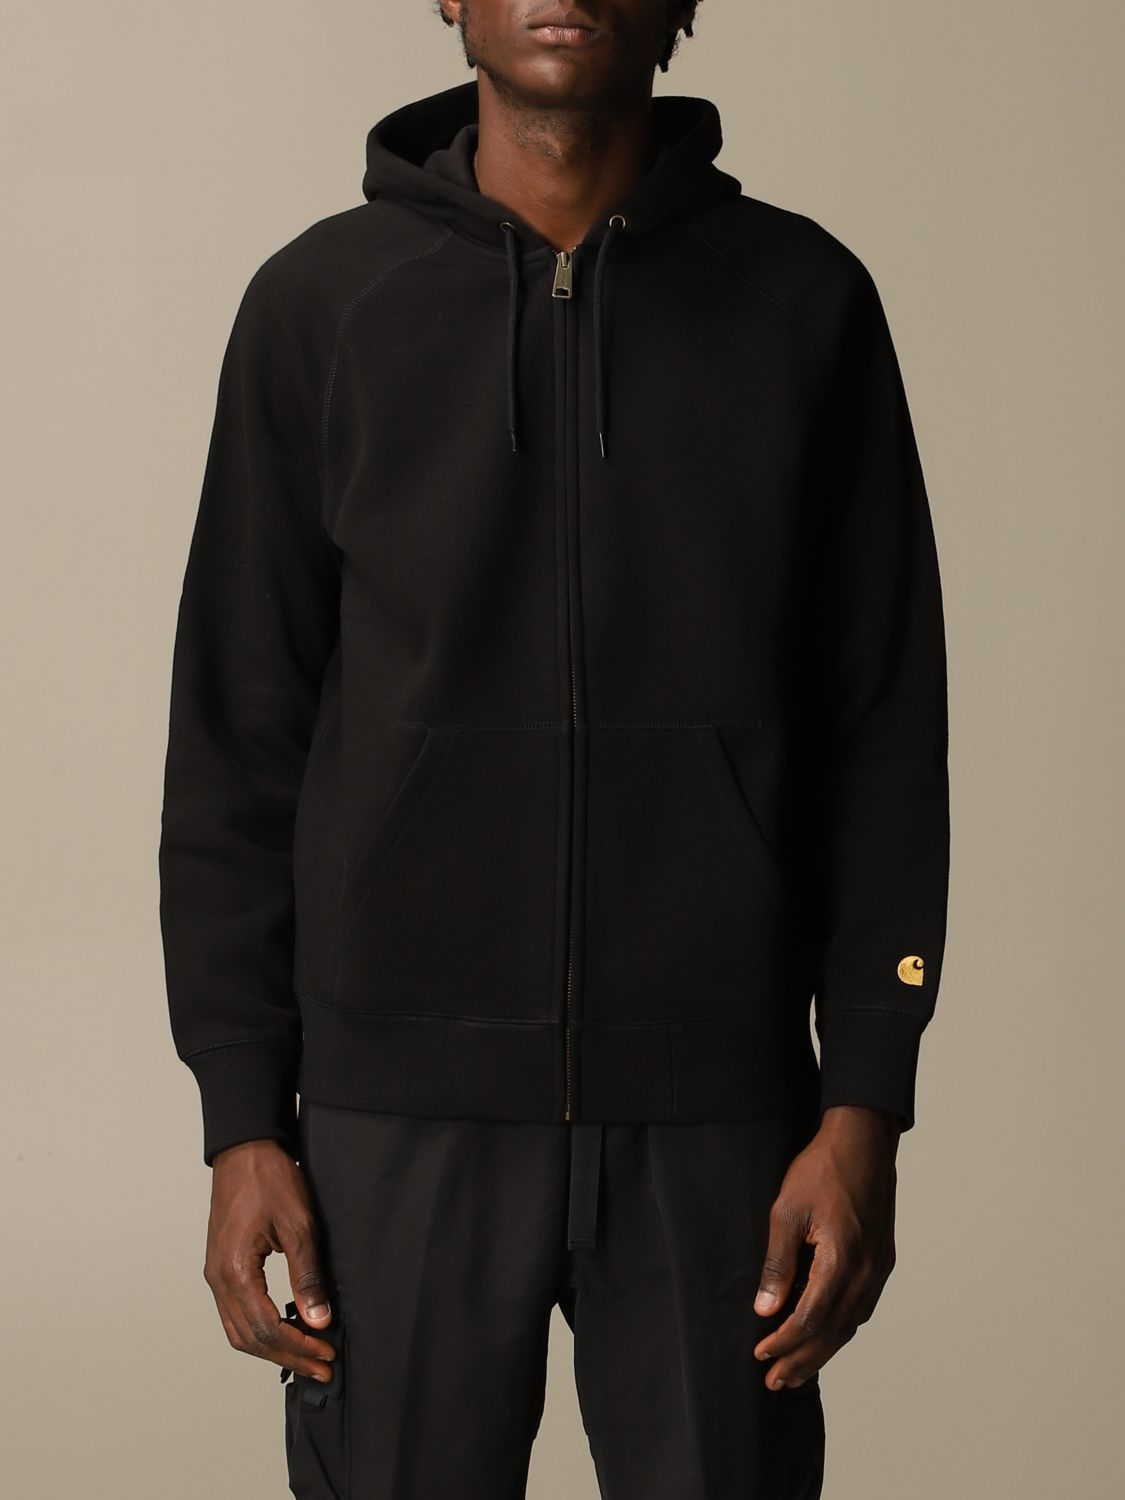 Sweatshirt Carhartt: Sweatshirt men Carhartt black 1